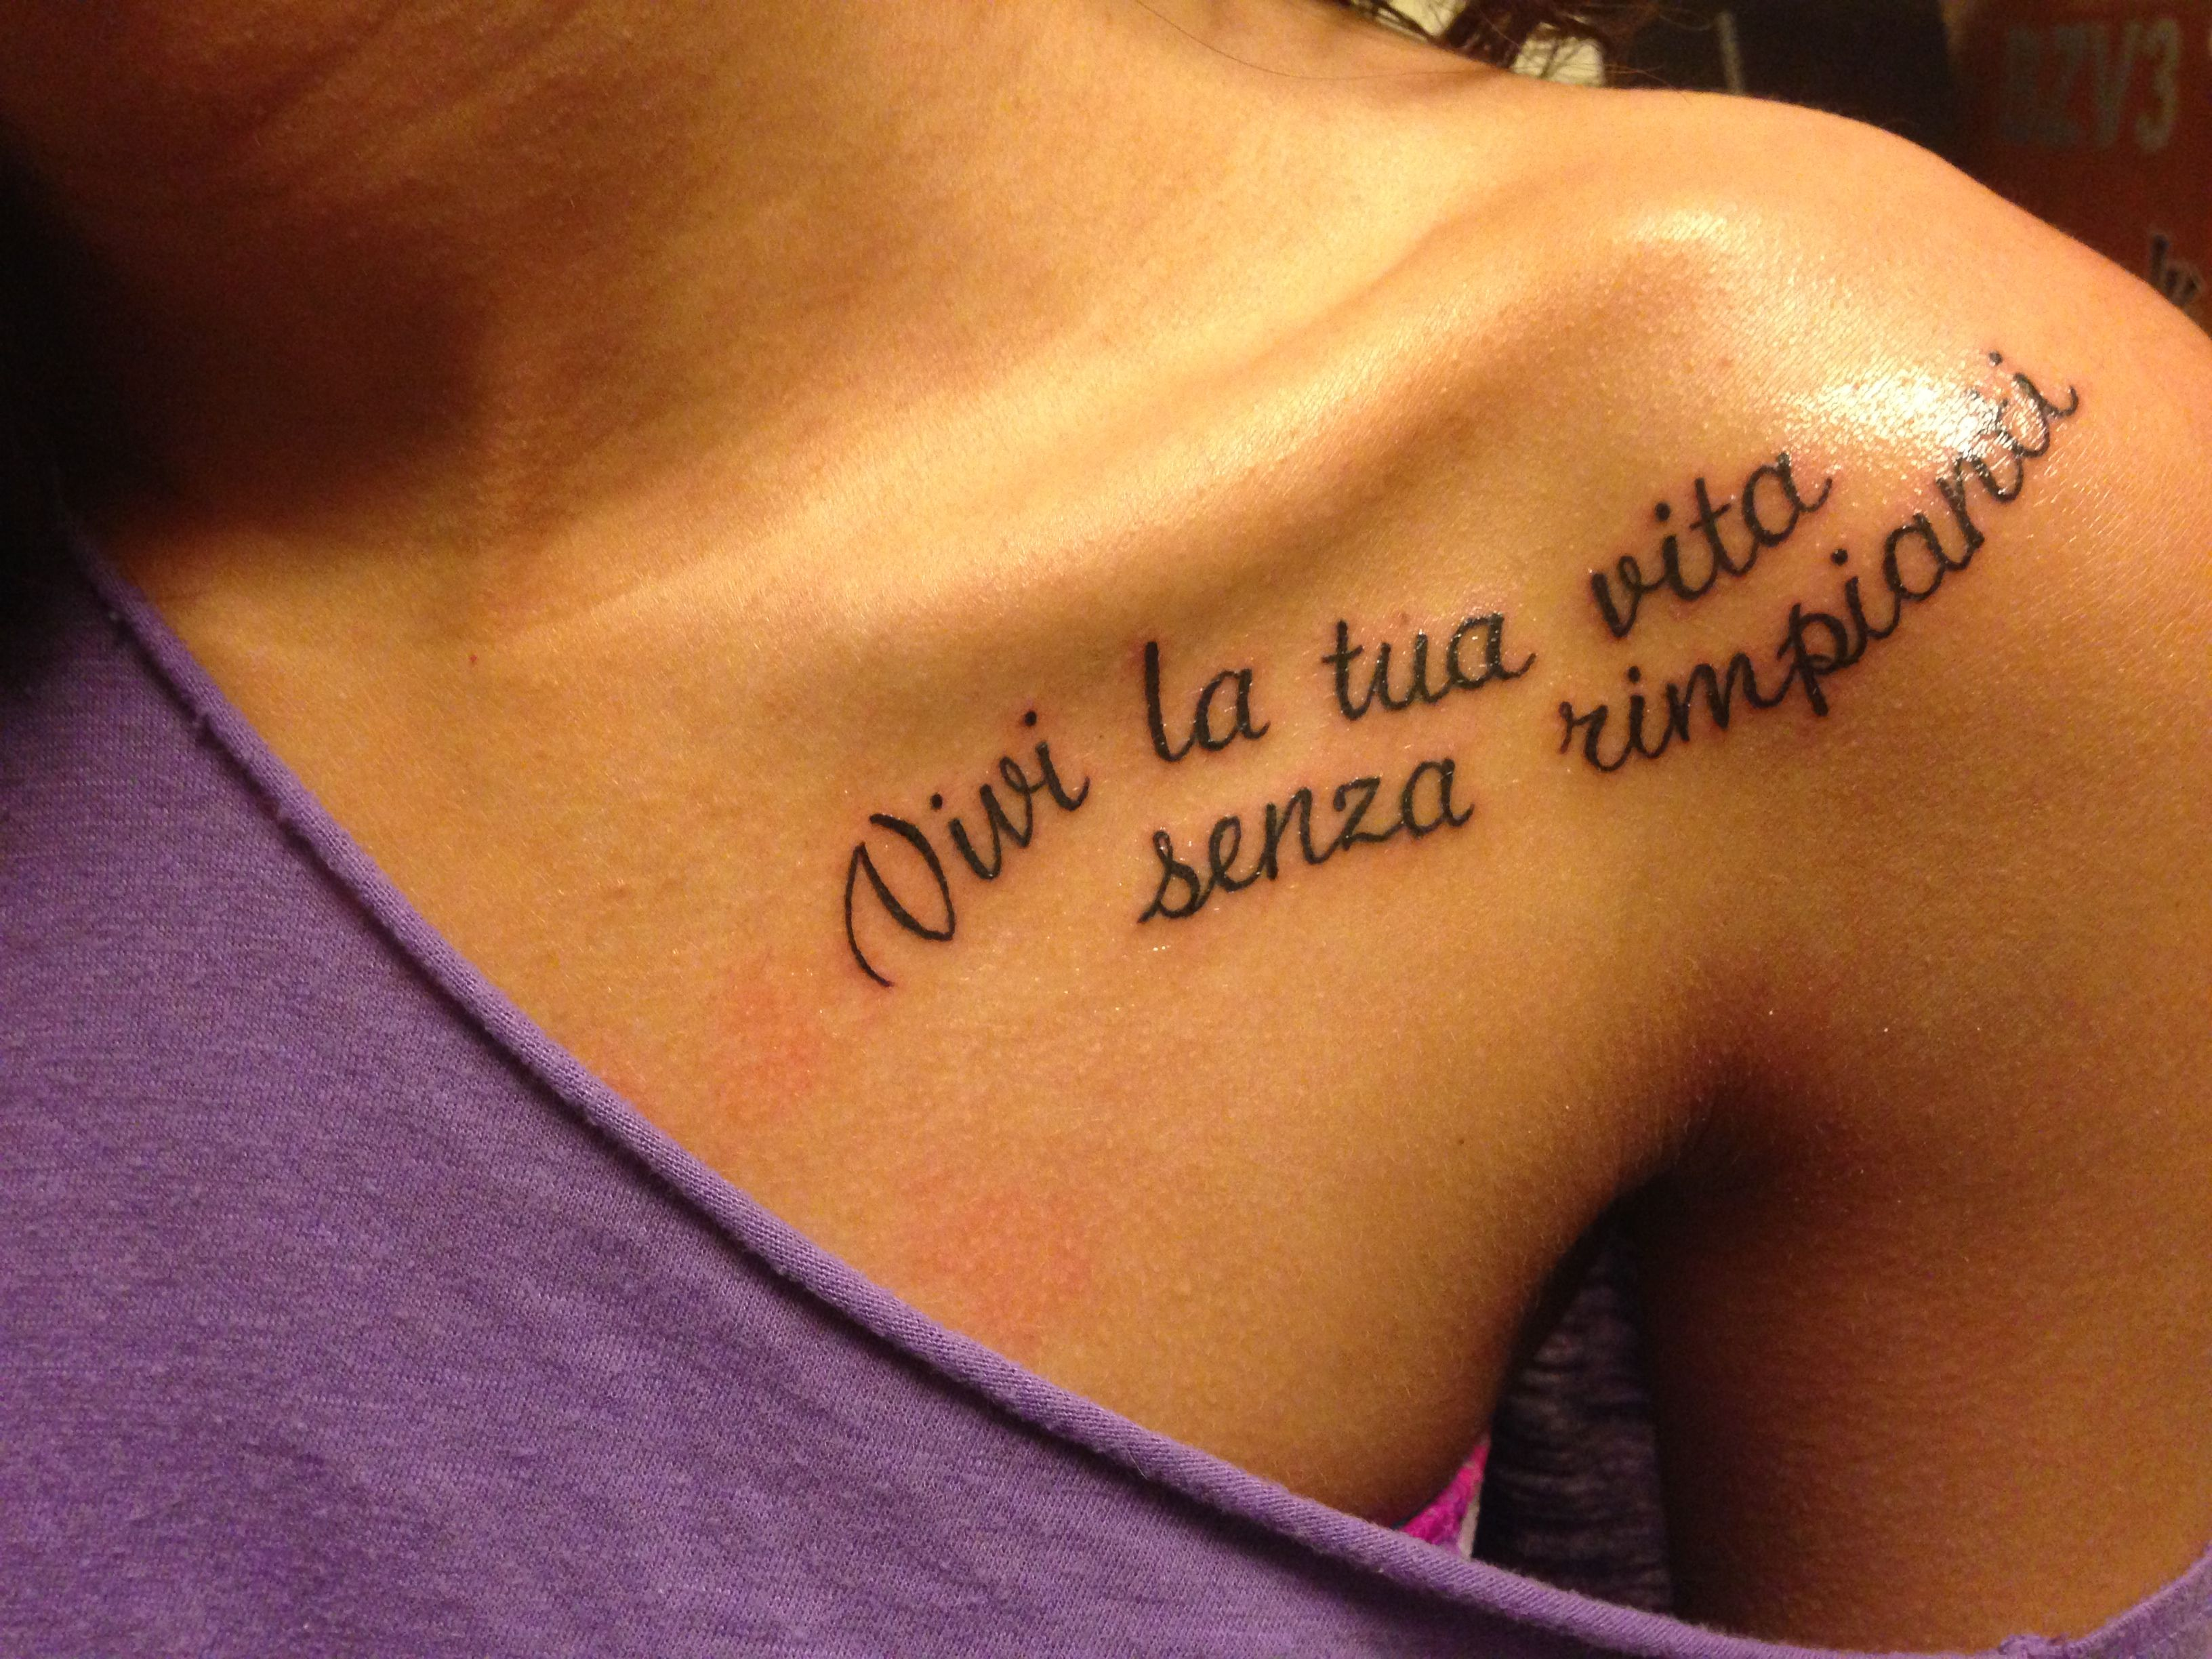 Live your life without regrets tattoo   Pretty Things   Tattoos, No ...